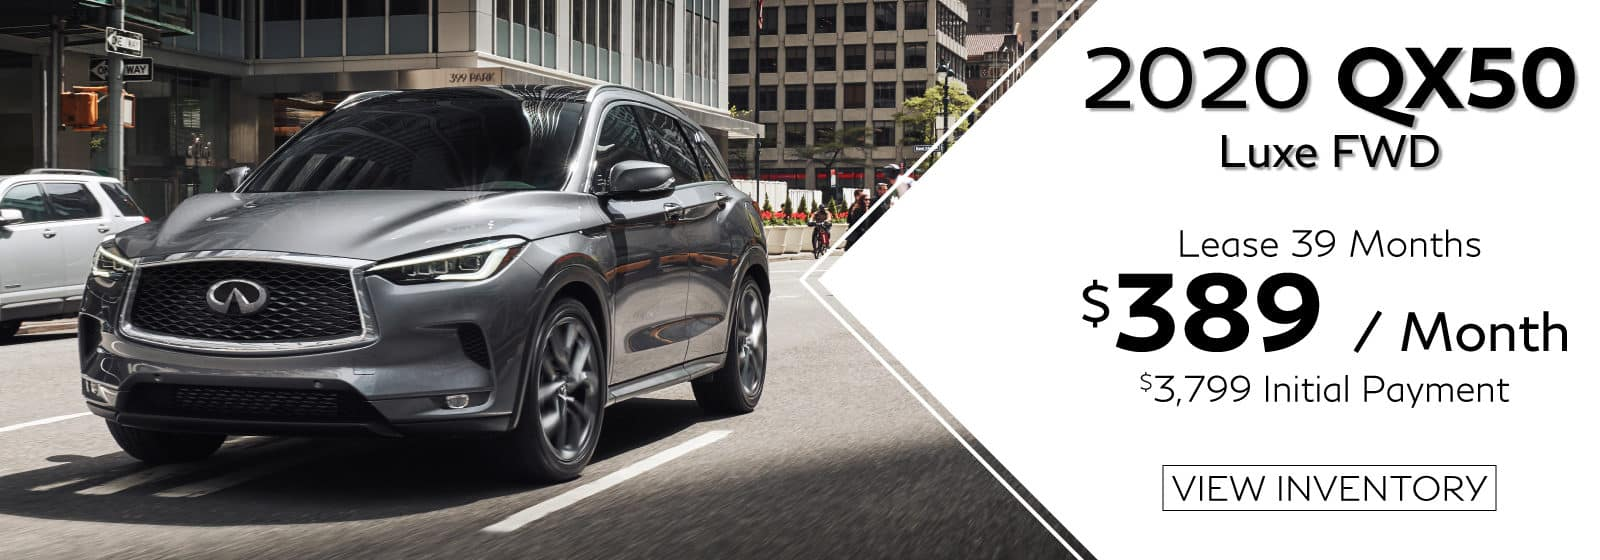 2020 QX50 LUXE. $389 a Month for 39 months. $3,799 initial payment. Gray QX50 driving in city. View Inventory button.